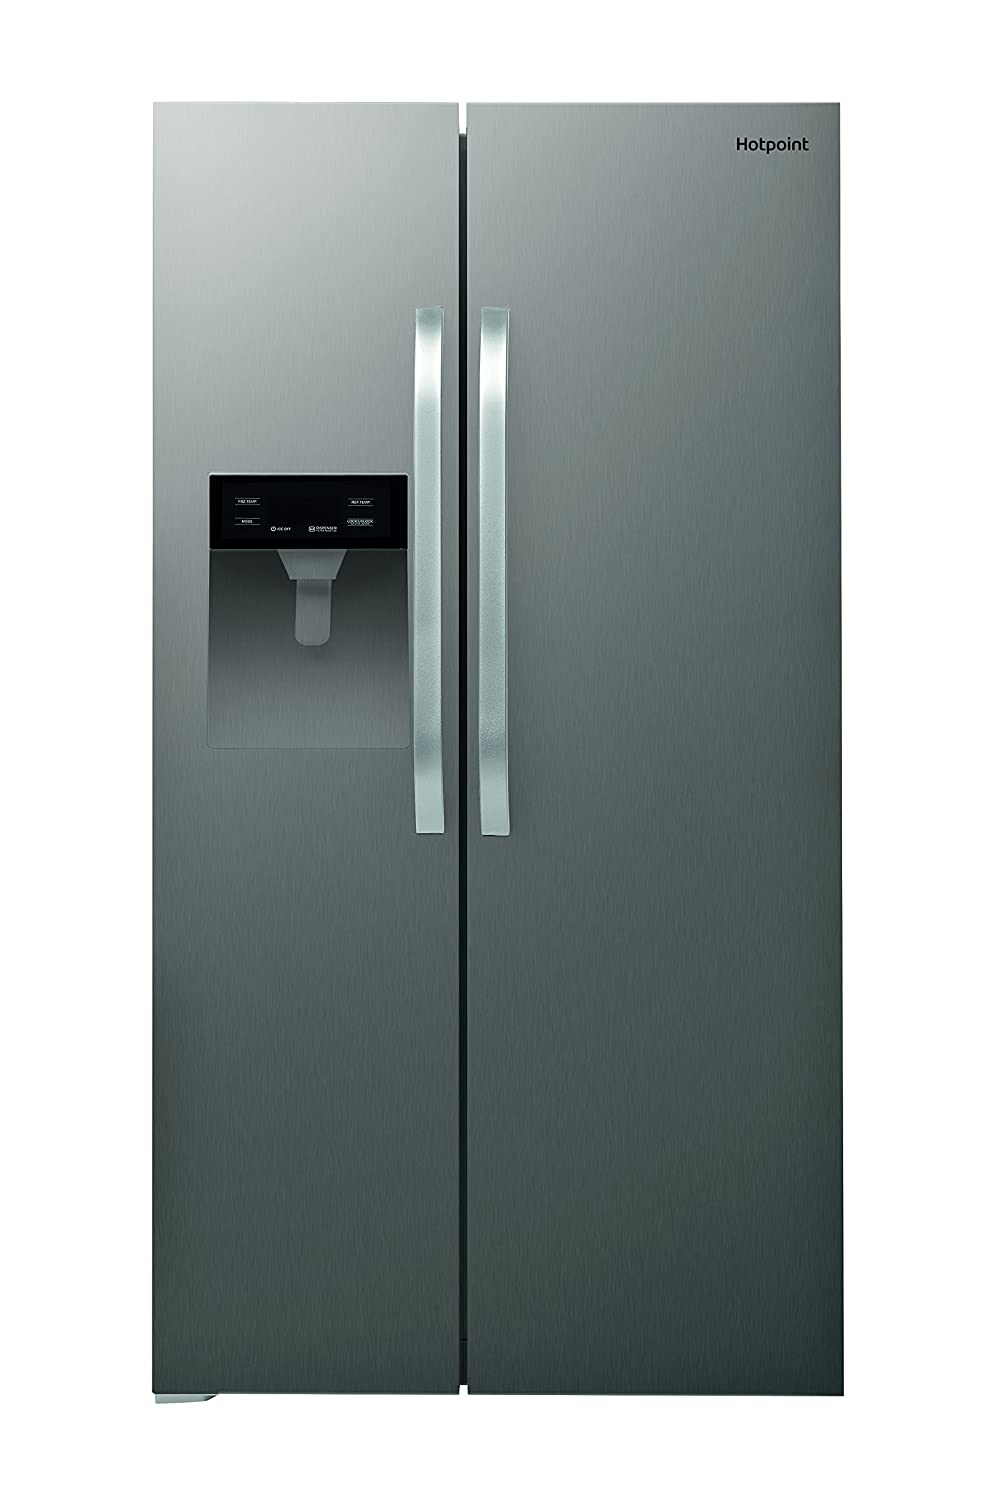 Hotpoint SXBHE924WD Freestanding A+ Rated American Fridge Freezer in Stainless Steel Indesit Group